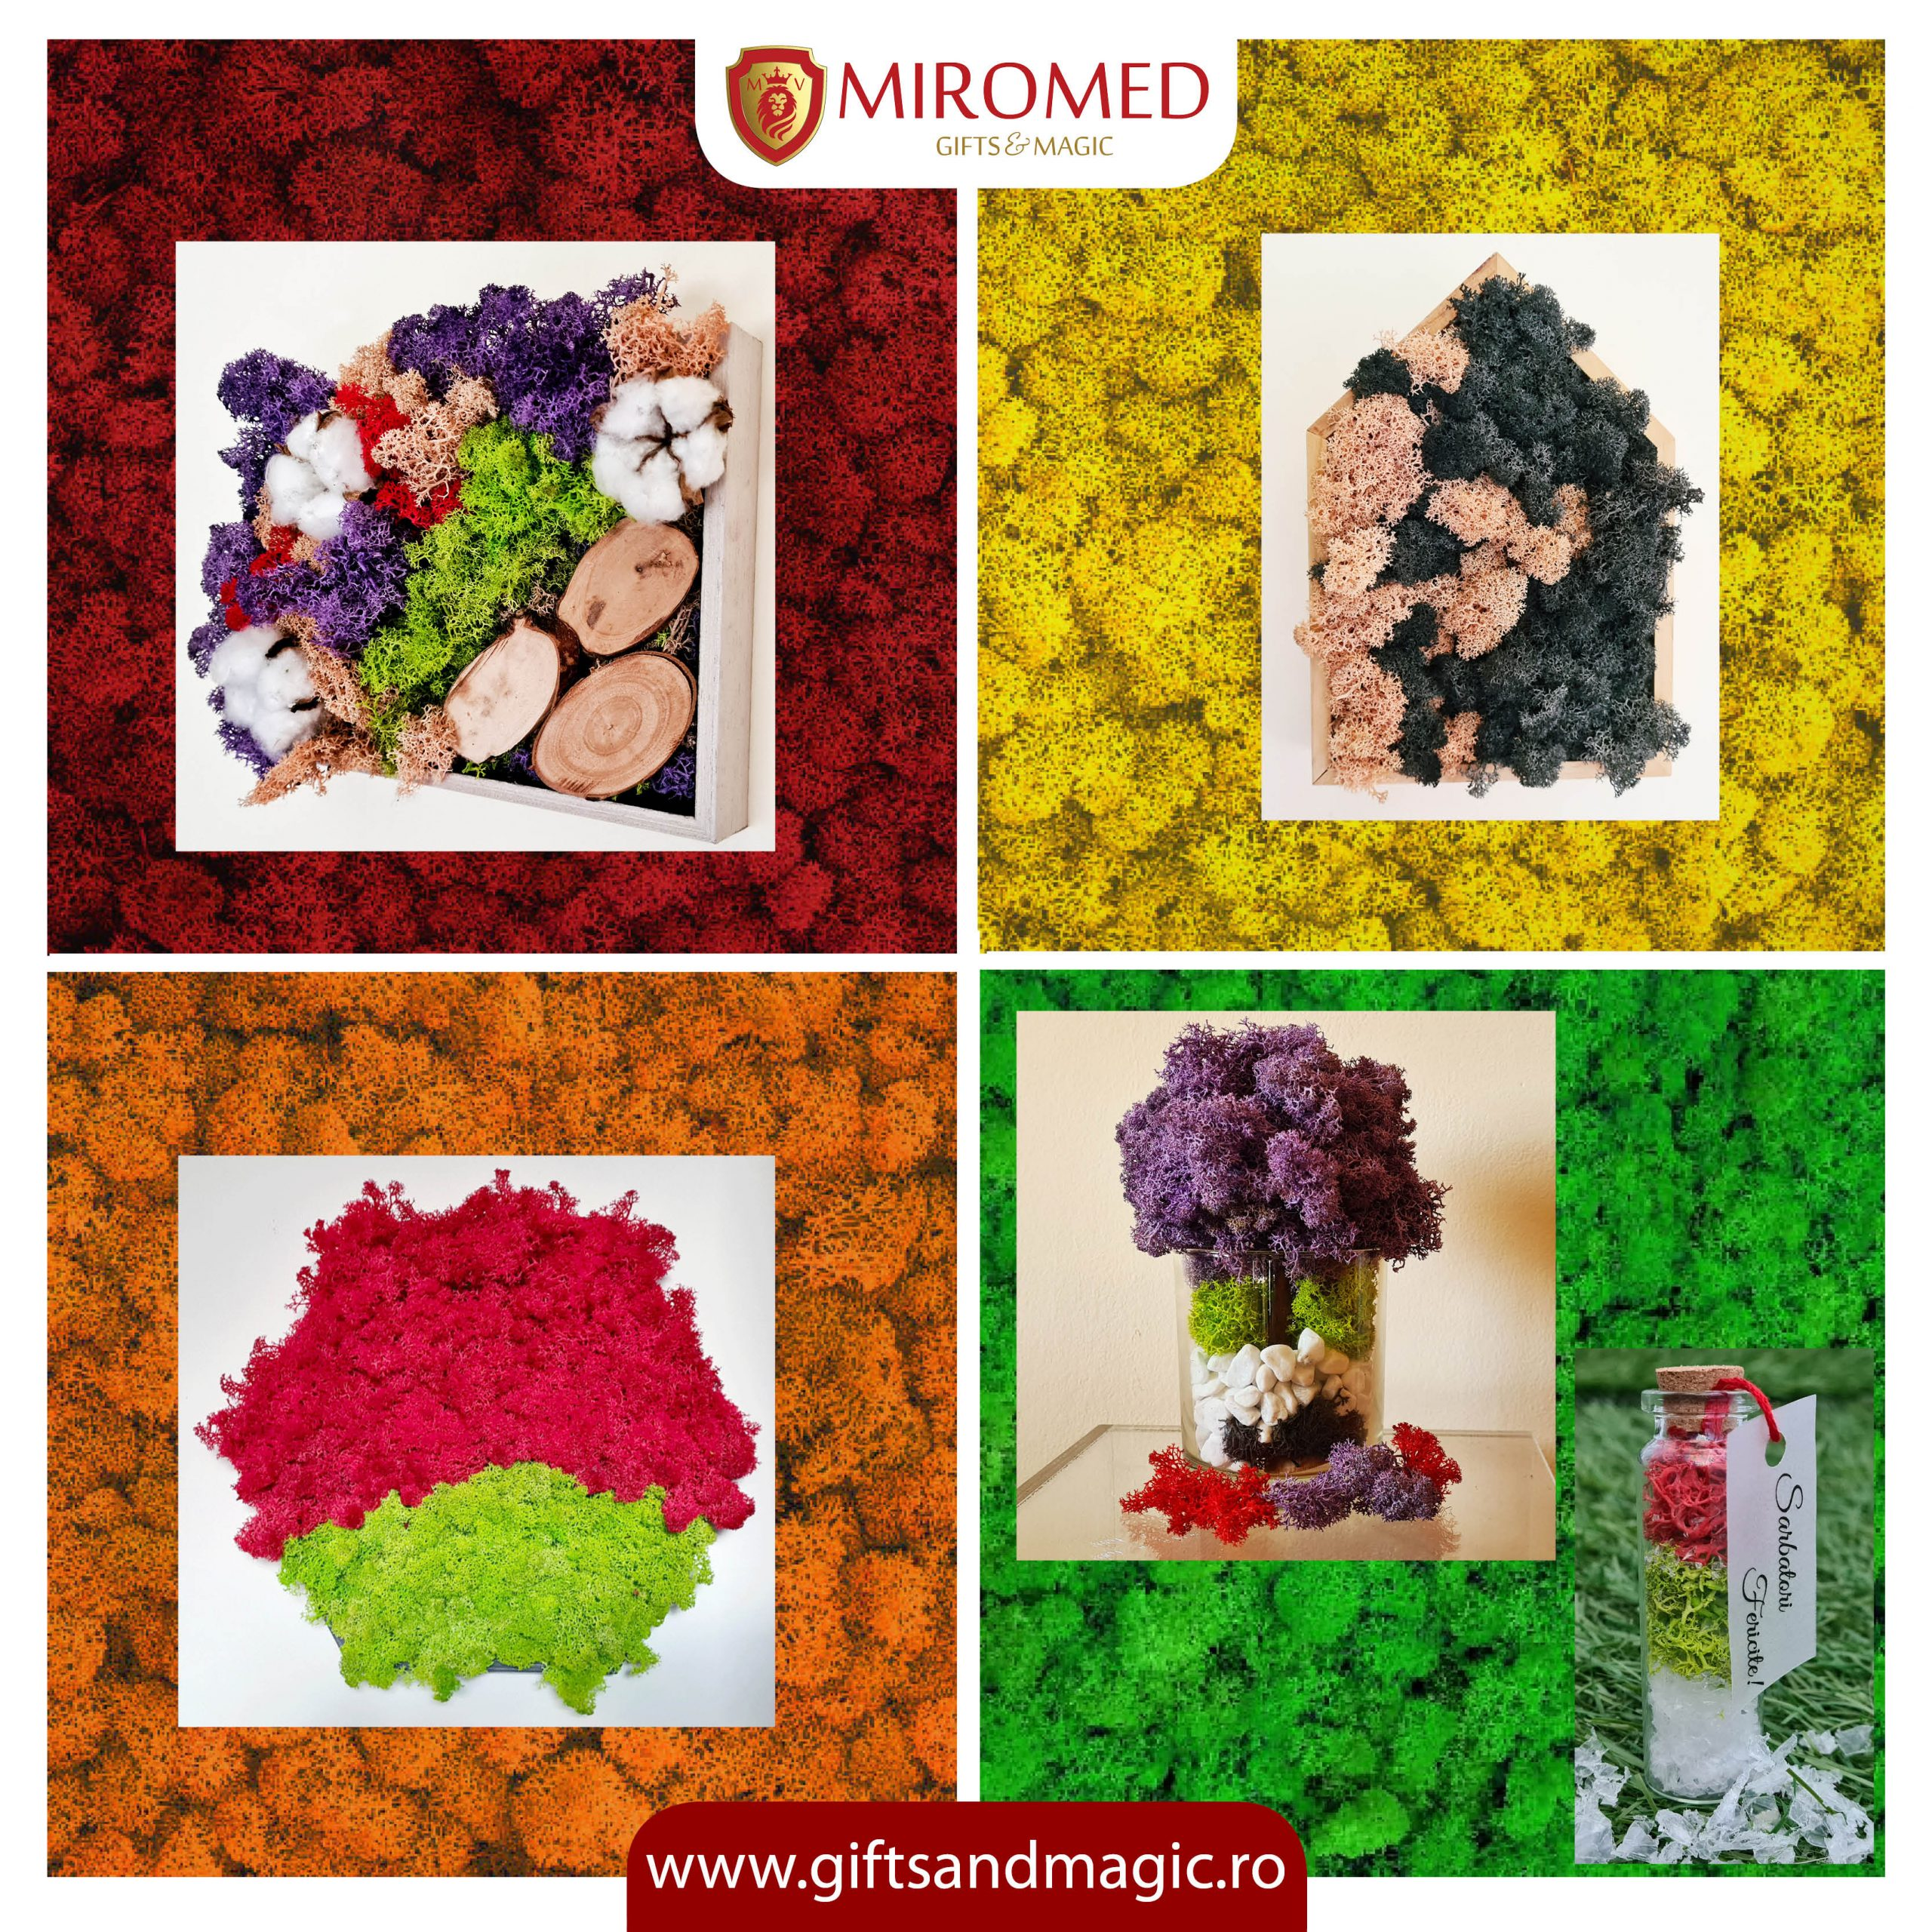 Miromed-cover-974bd420